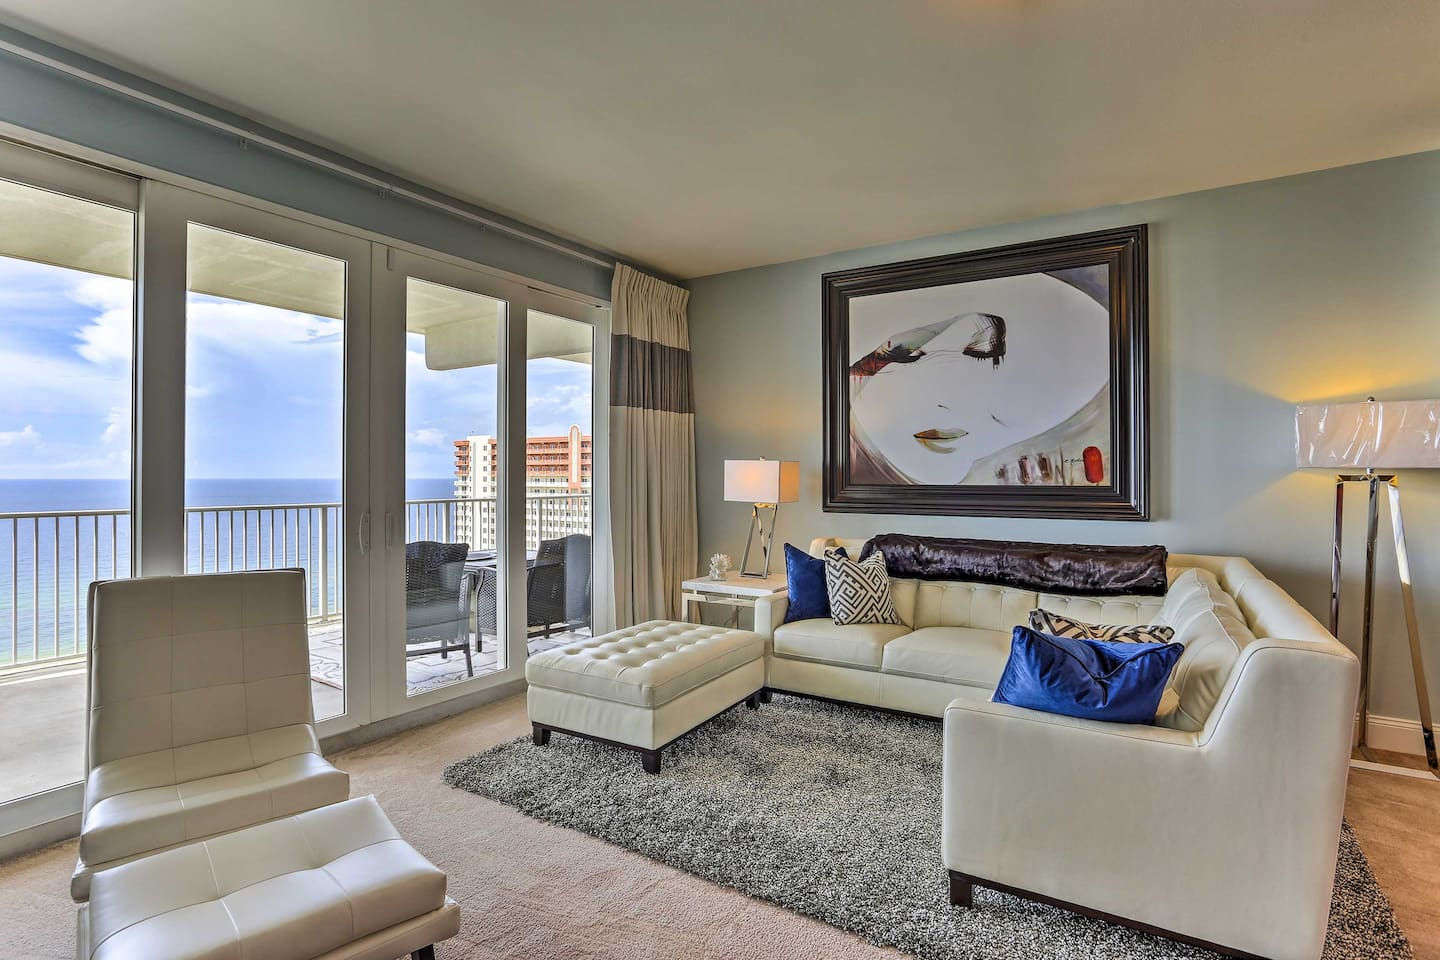 This vacation rental unit will create an incredible experience in PCB!